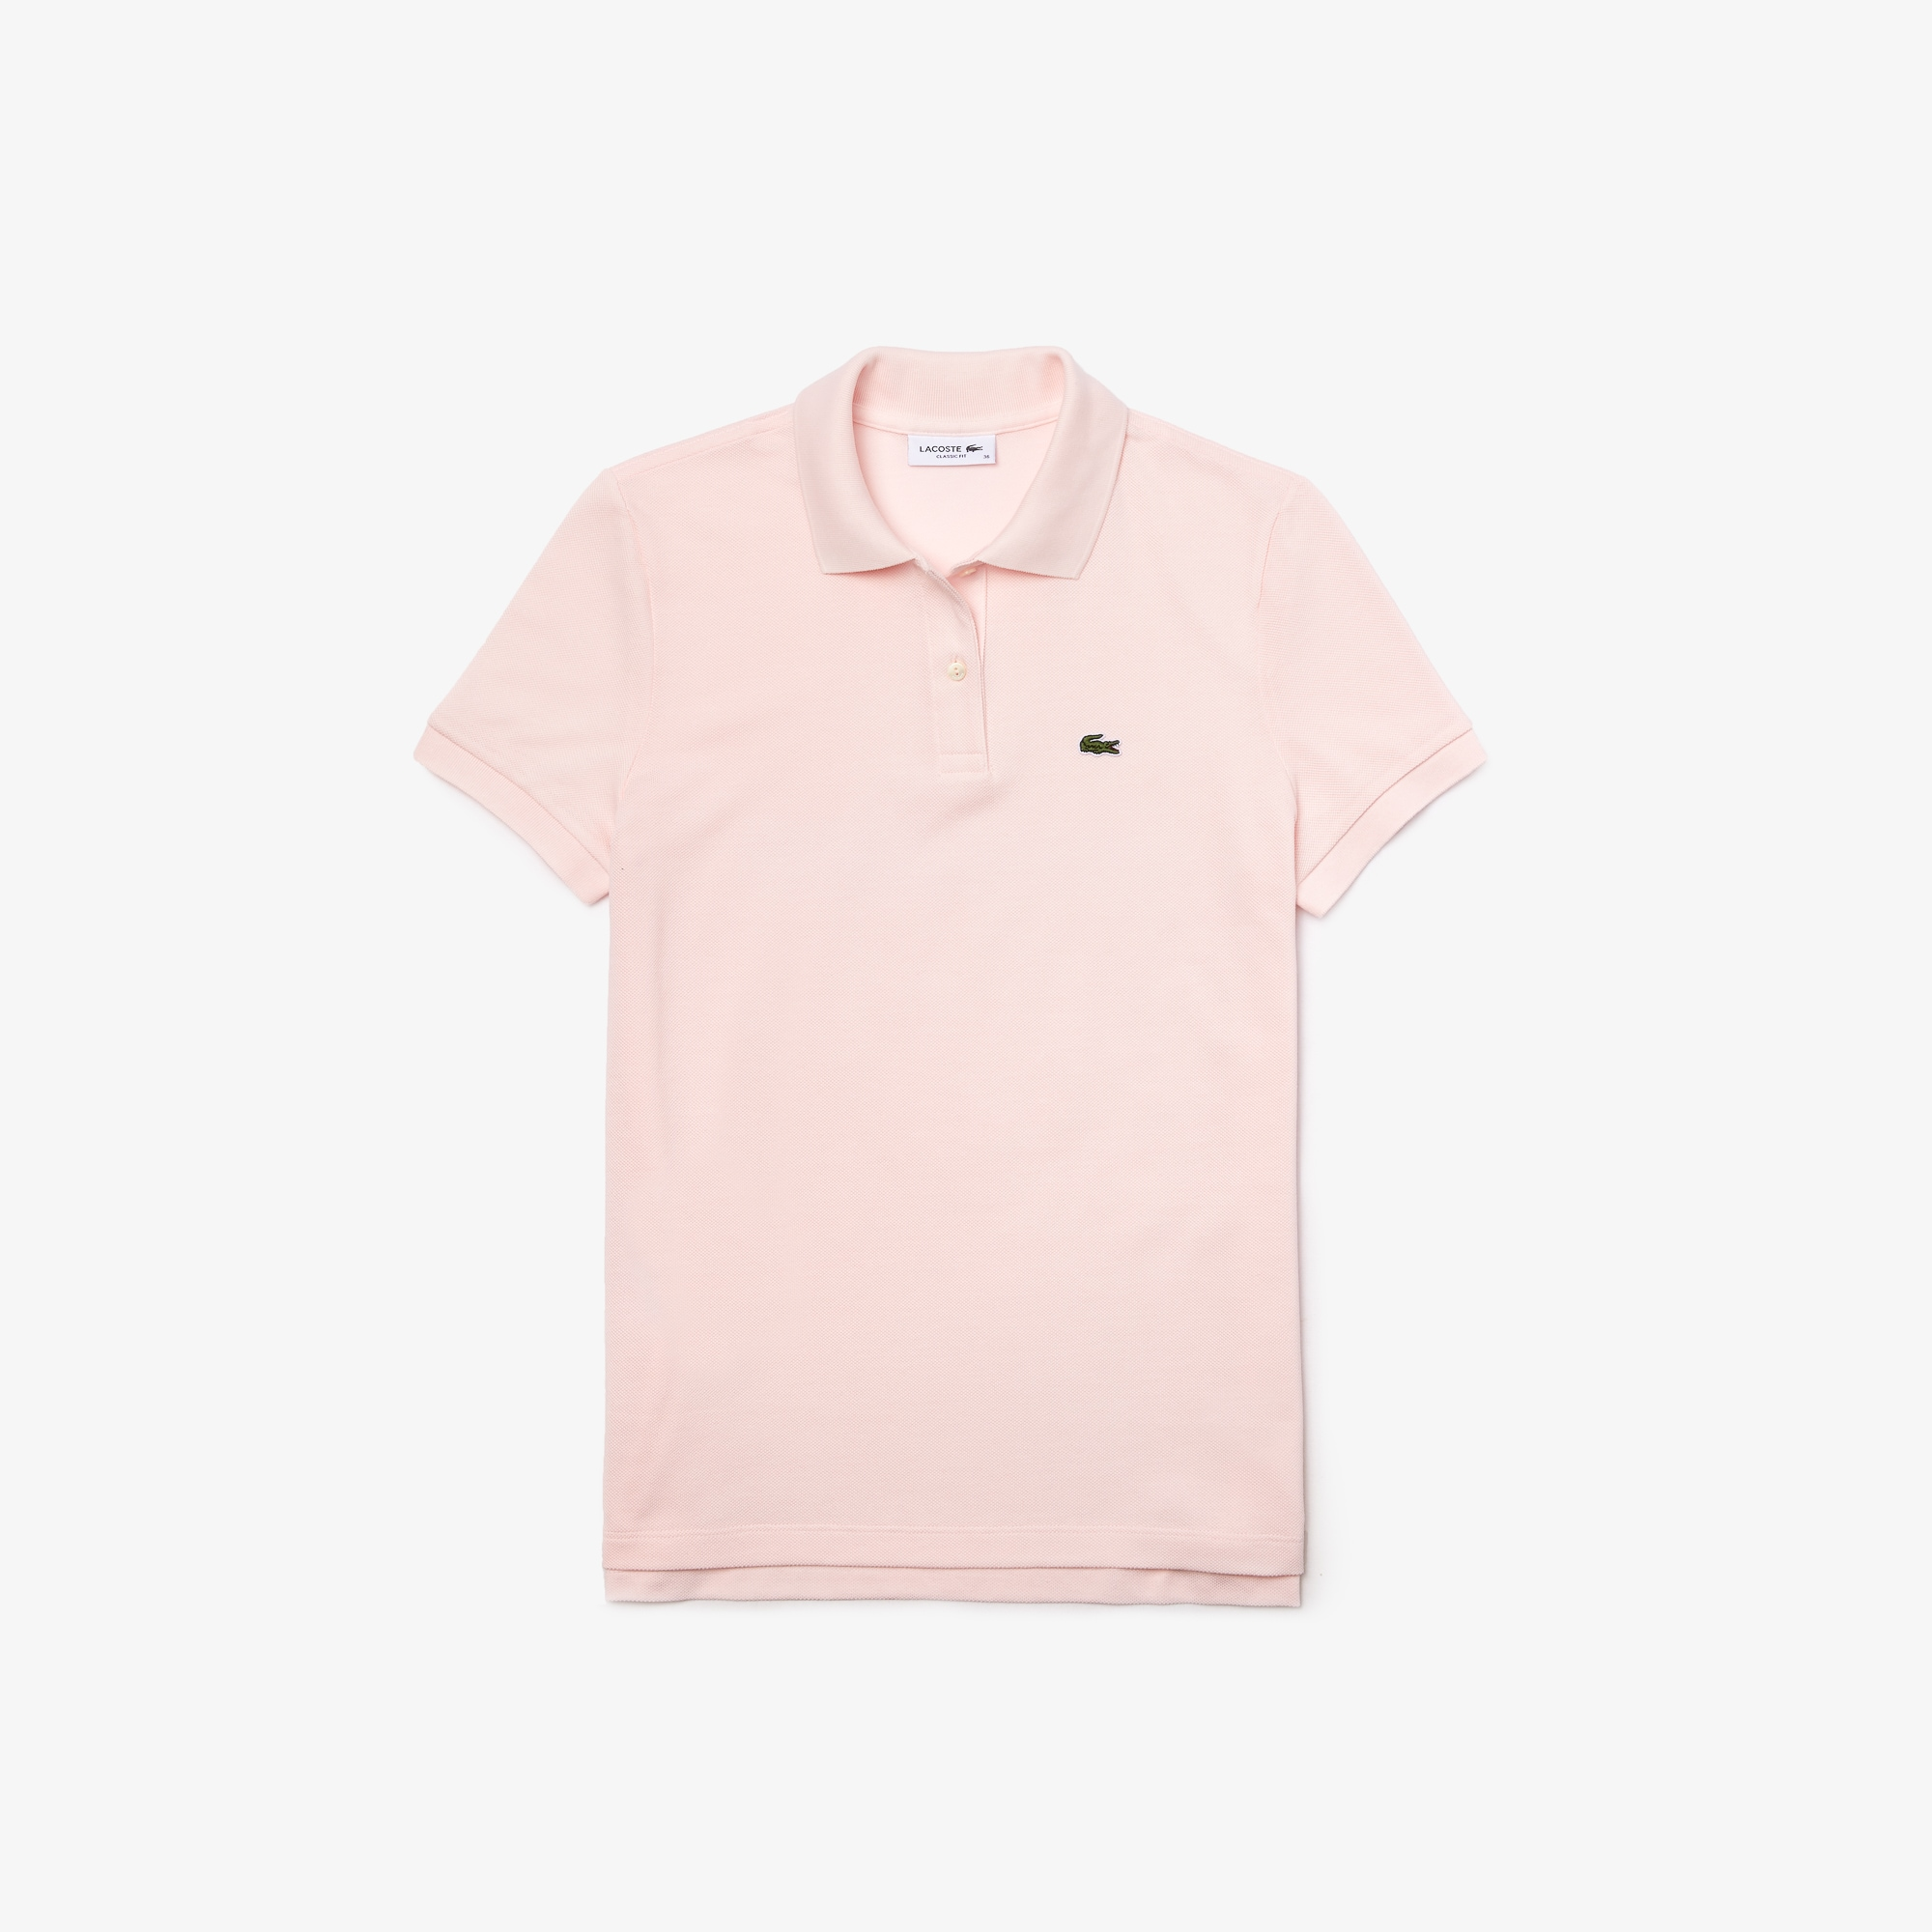 Women's Lacoste Classic Fit Soft Cotton Petit Piqué Polo